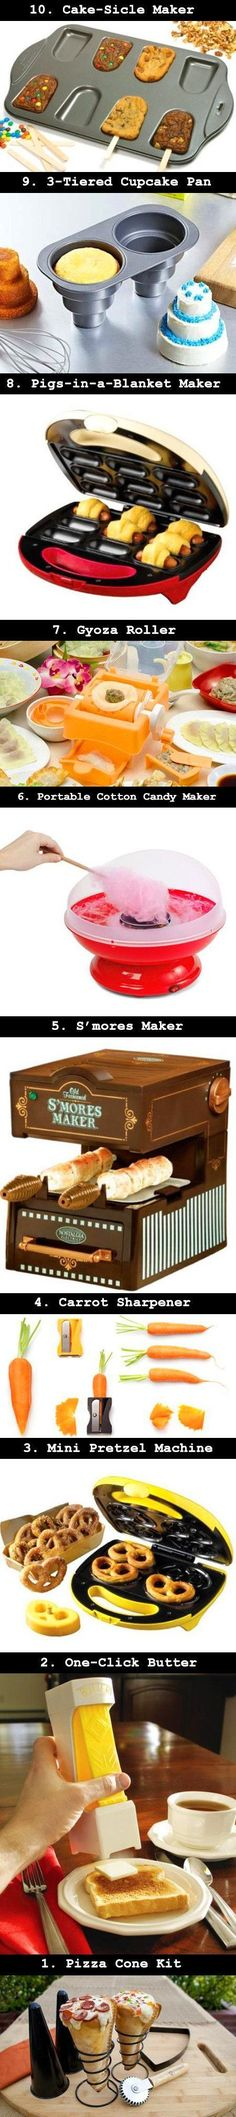 10 Awesome Kitchen Gadgets and Accessories Geeks Would Love